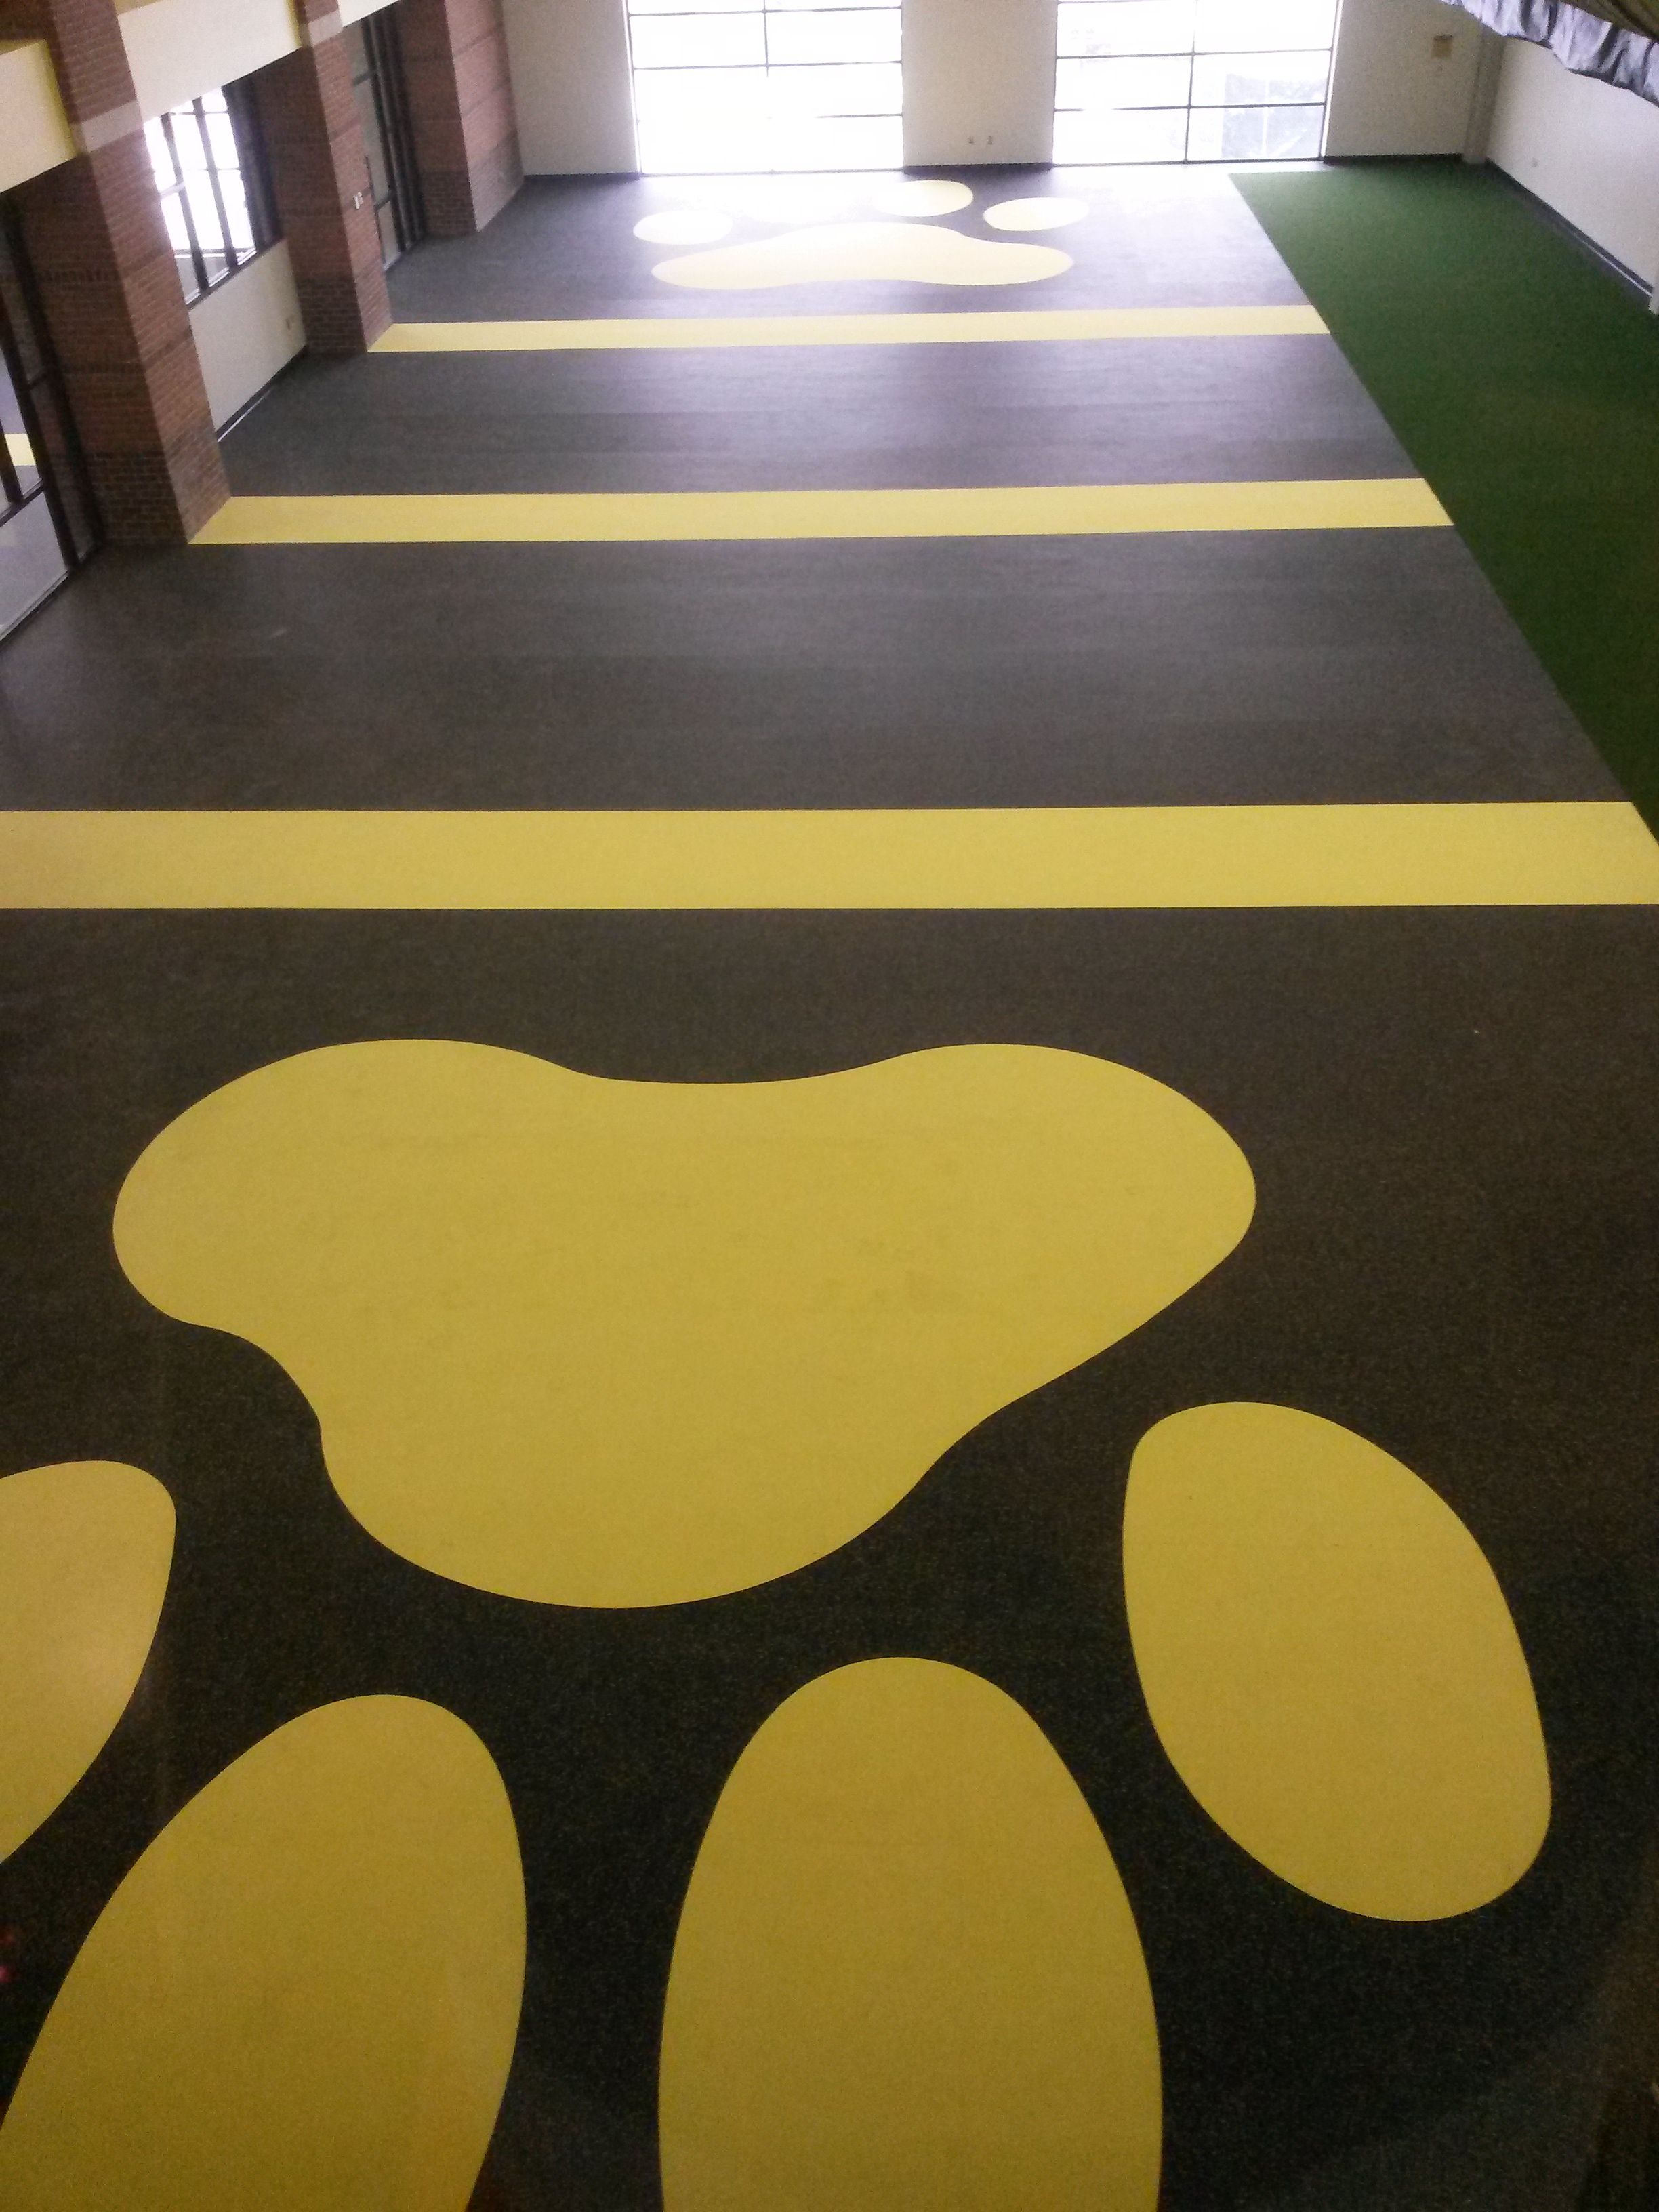 Thor Resi24 and Thor Thunder 40 Performance Turf installation for